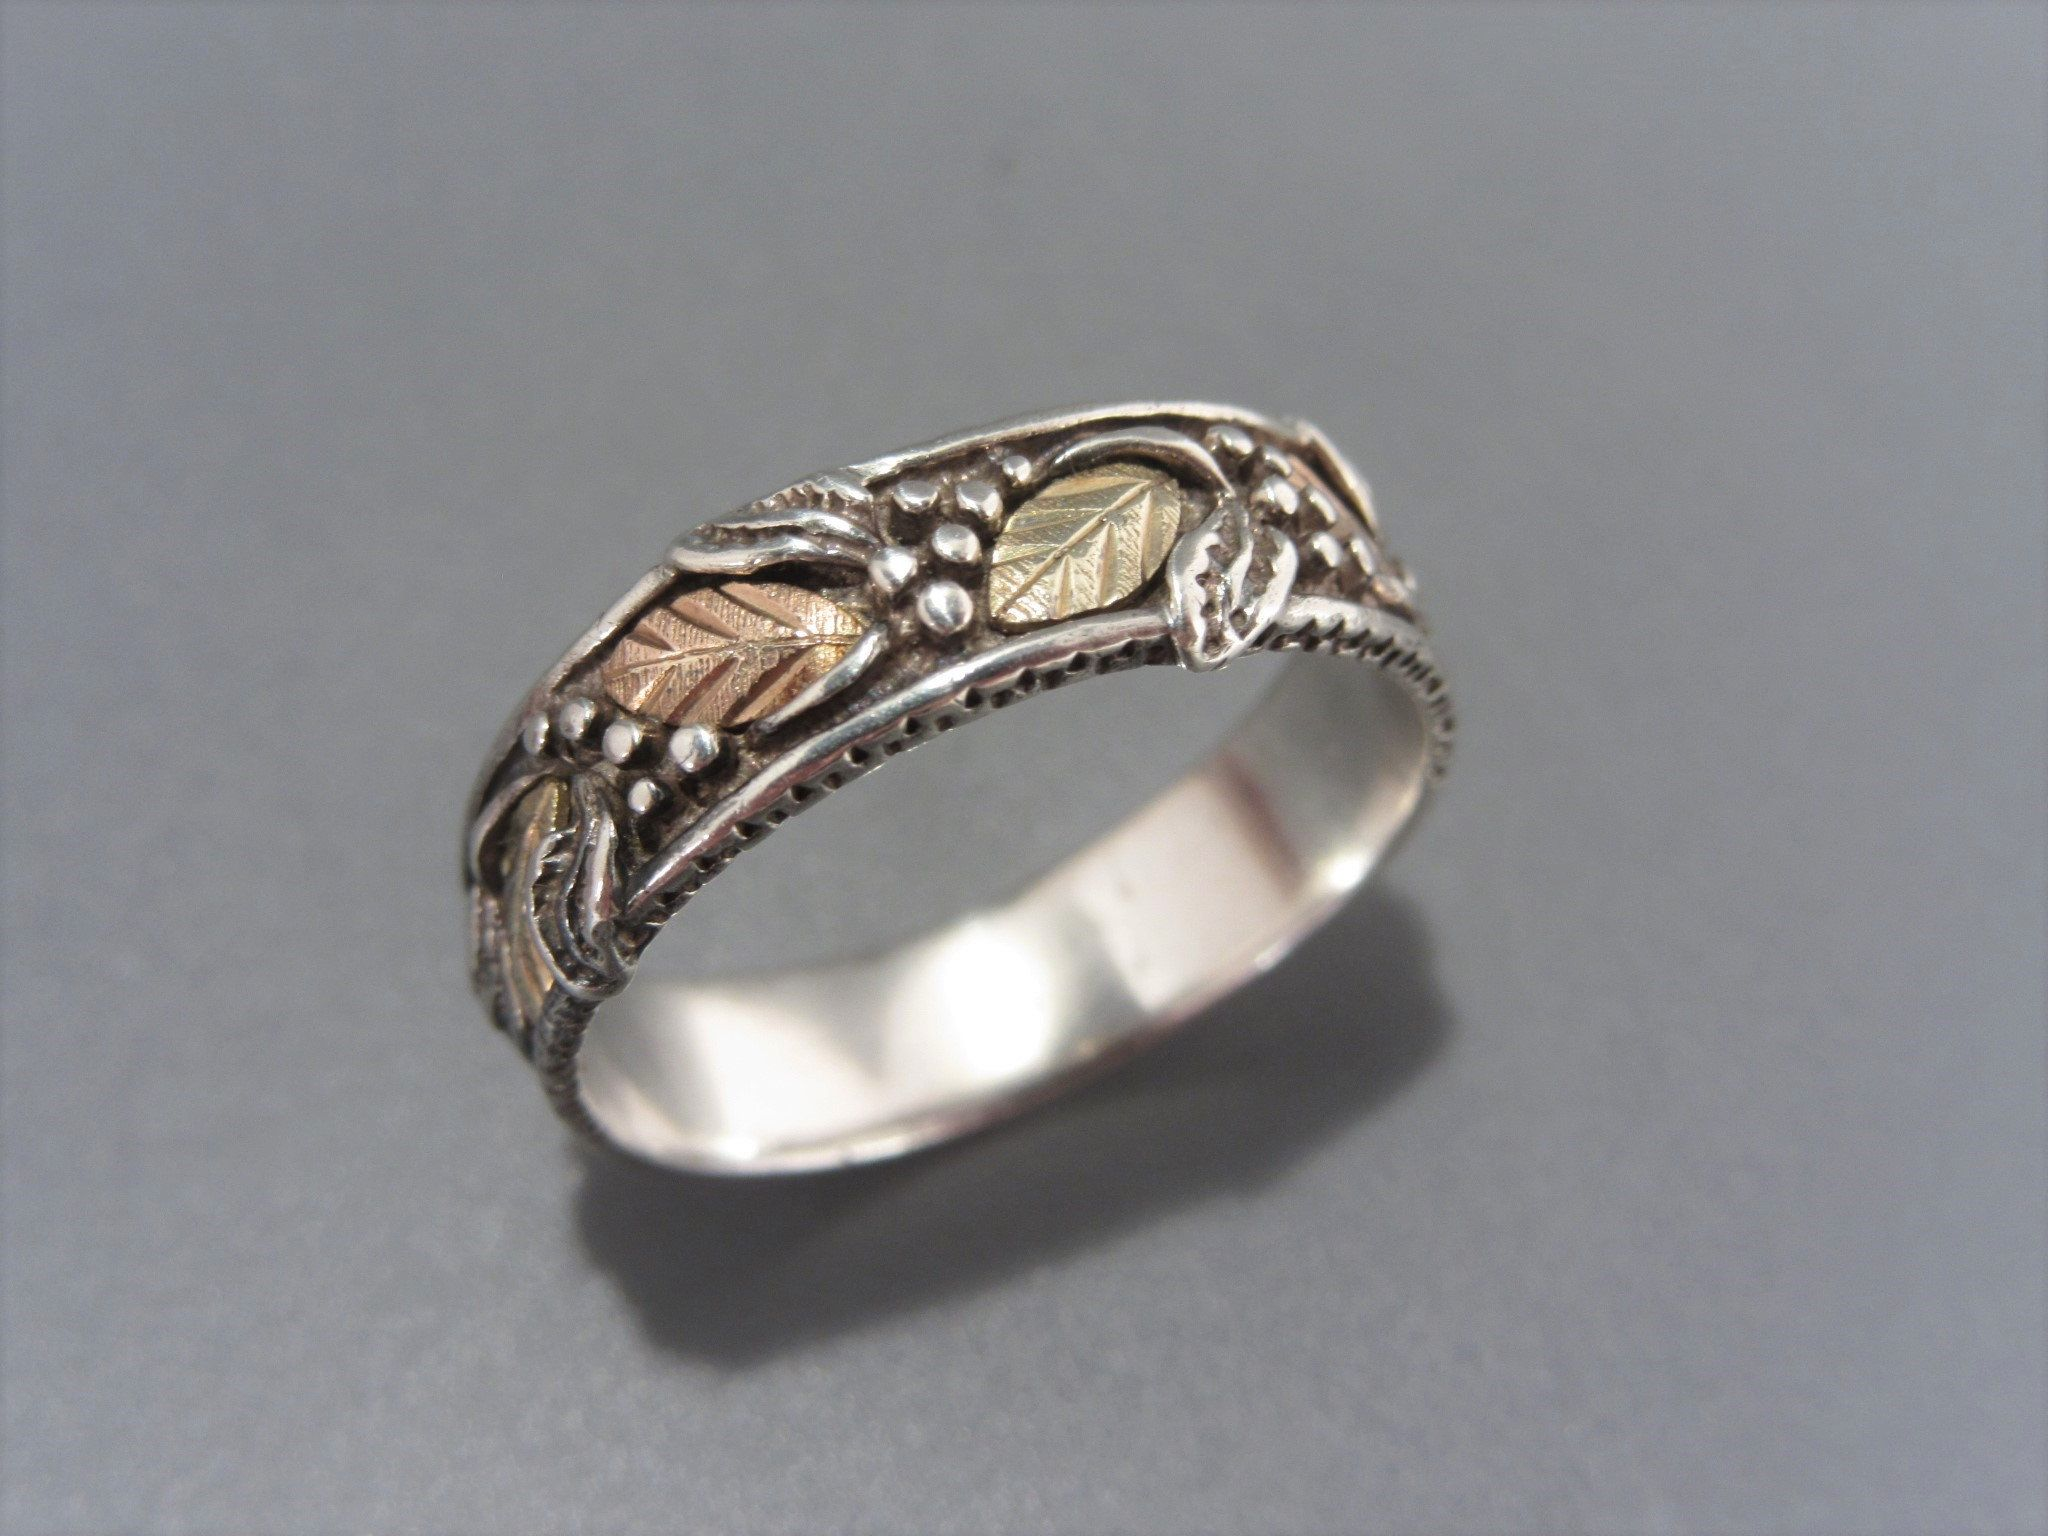 Vintage Sterling Silver Link Chain Band Ring Size 9